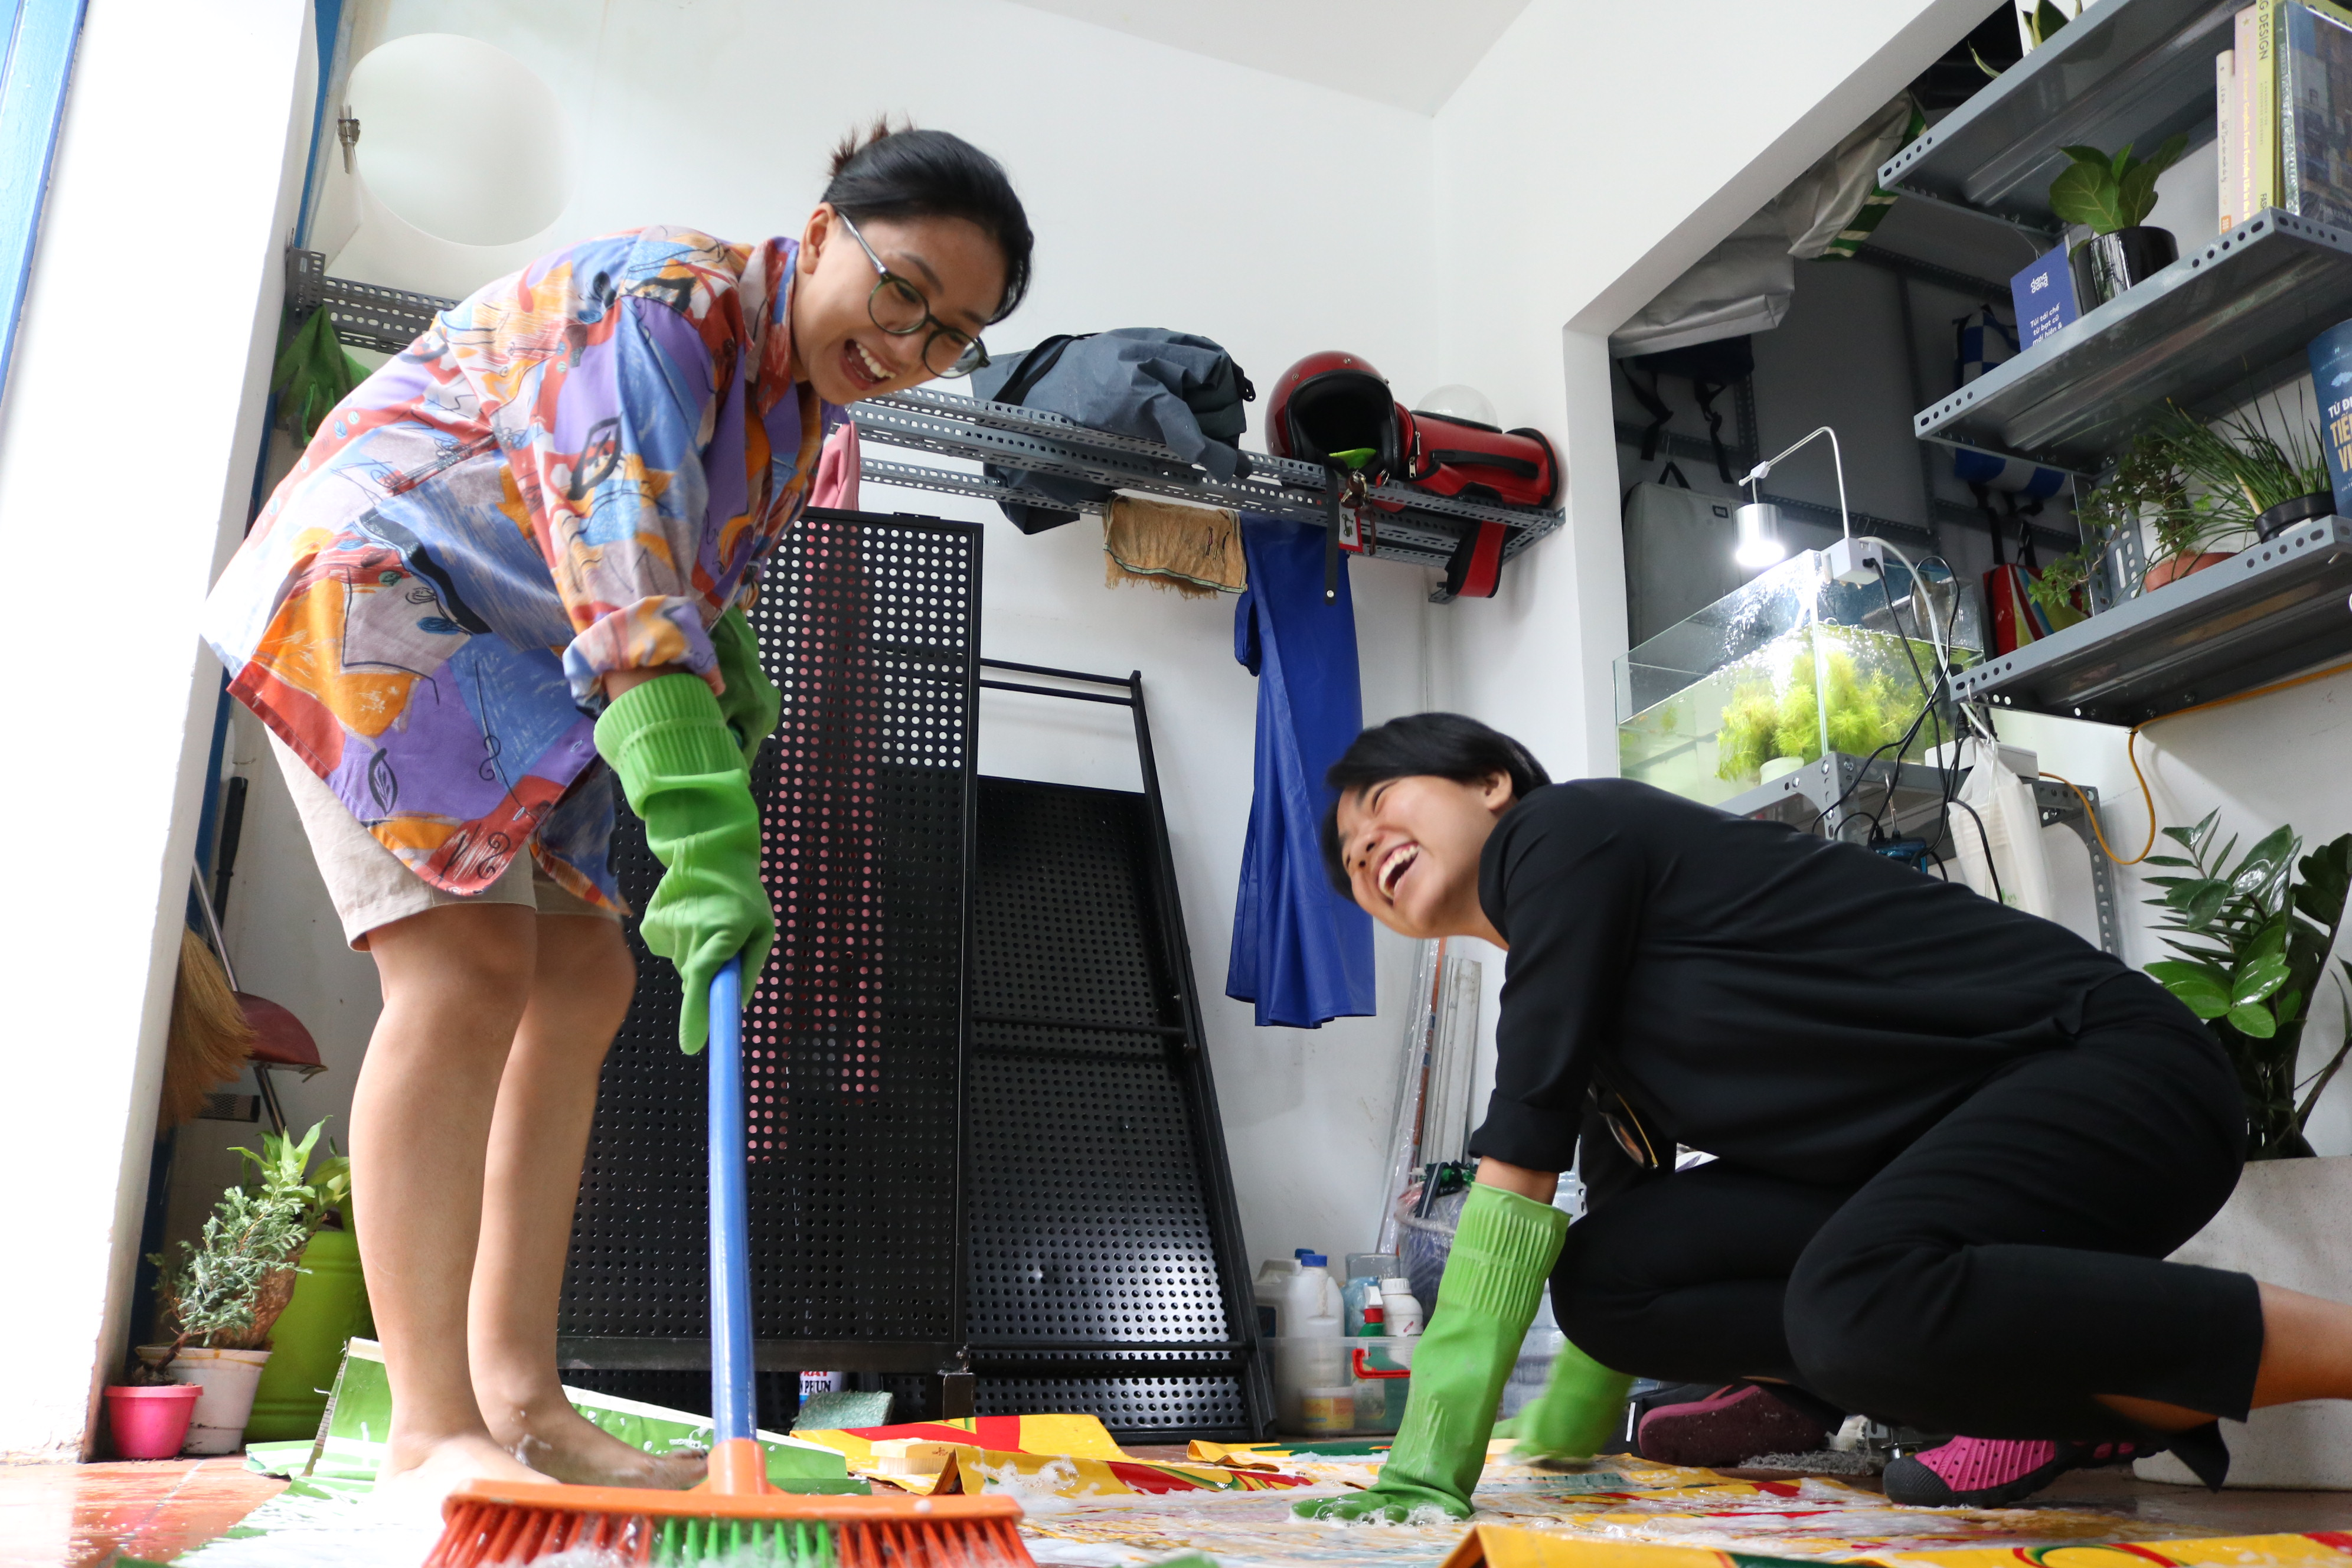 Thao Trang (left) and Tu Quan, two members of Dong Dong Sai Gon, clean old tarps before turning them into bags at the brand's workshop in Ho Chi Minh City, August 2020. Photo: Hoang An / Tuoi Tre